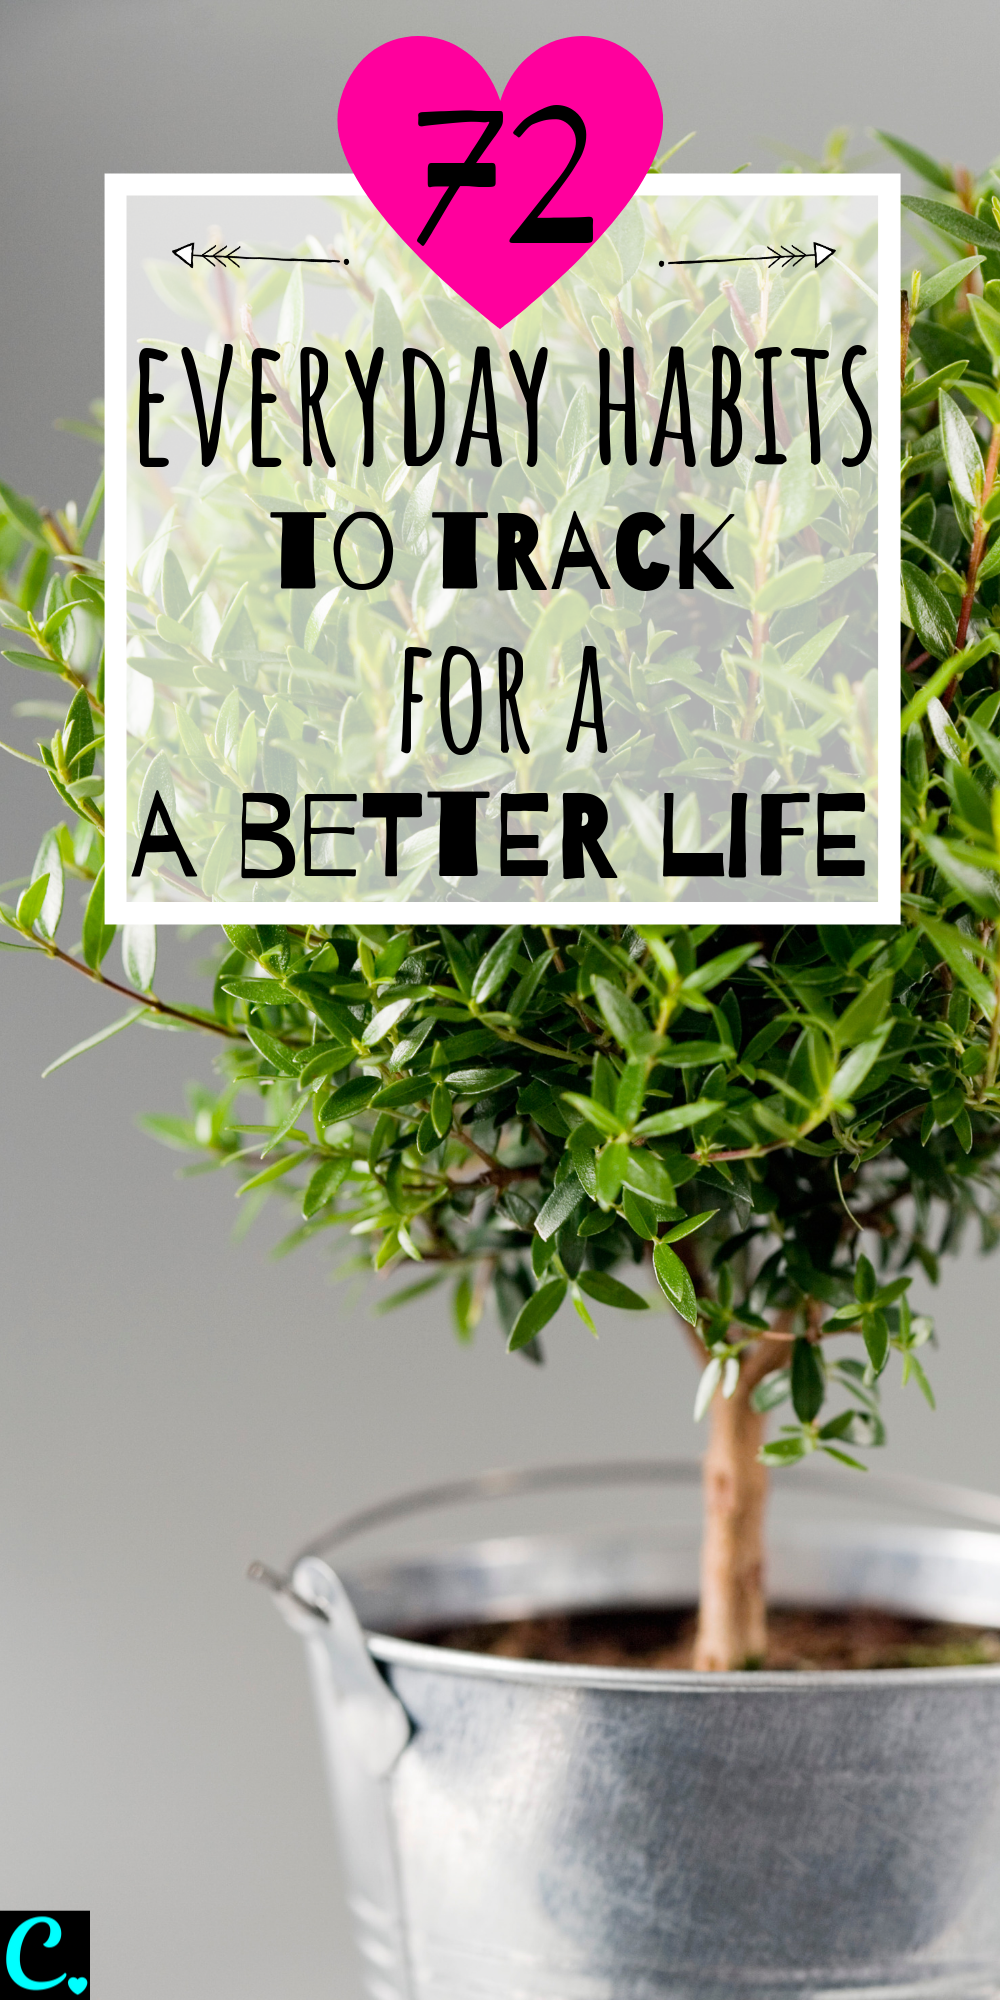 72Everyday Habits to Track For A Better Life! Get a healthy lifestyle by tracking your habits & breaking bad habits! #habittracking #breakbadhabits #bulletjournalideas #bulletjournallayout #selfcare #personaldevelopment